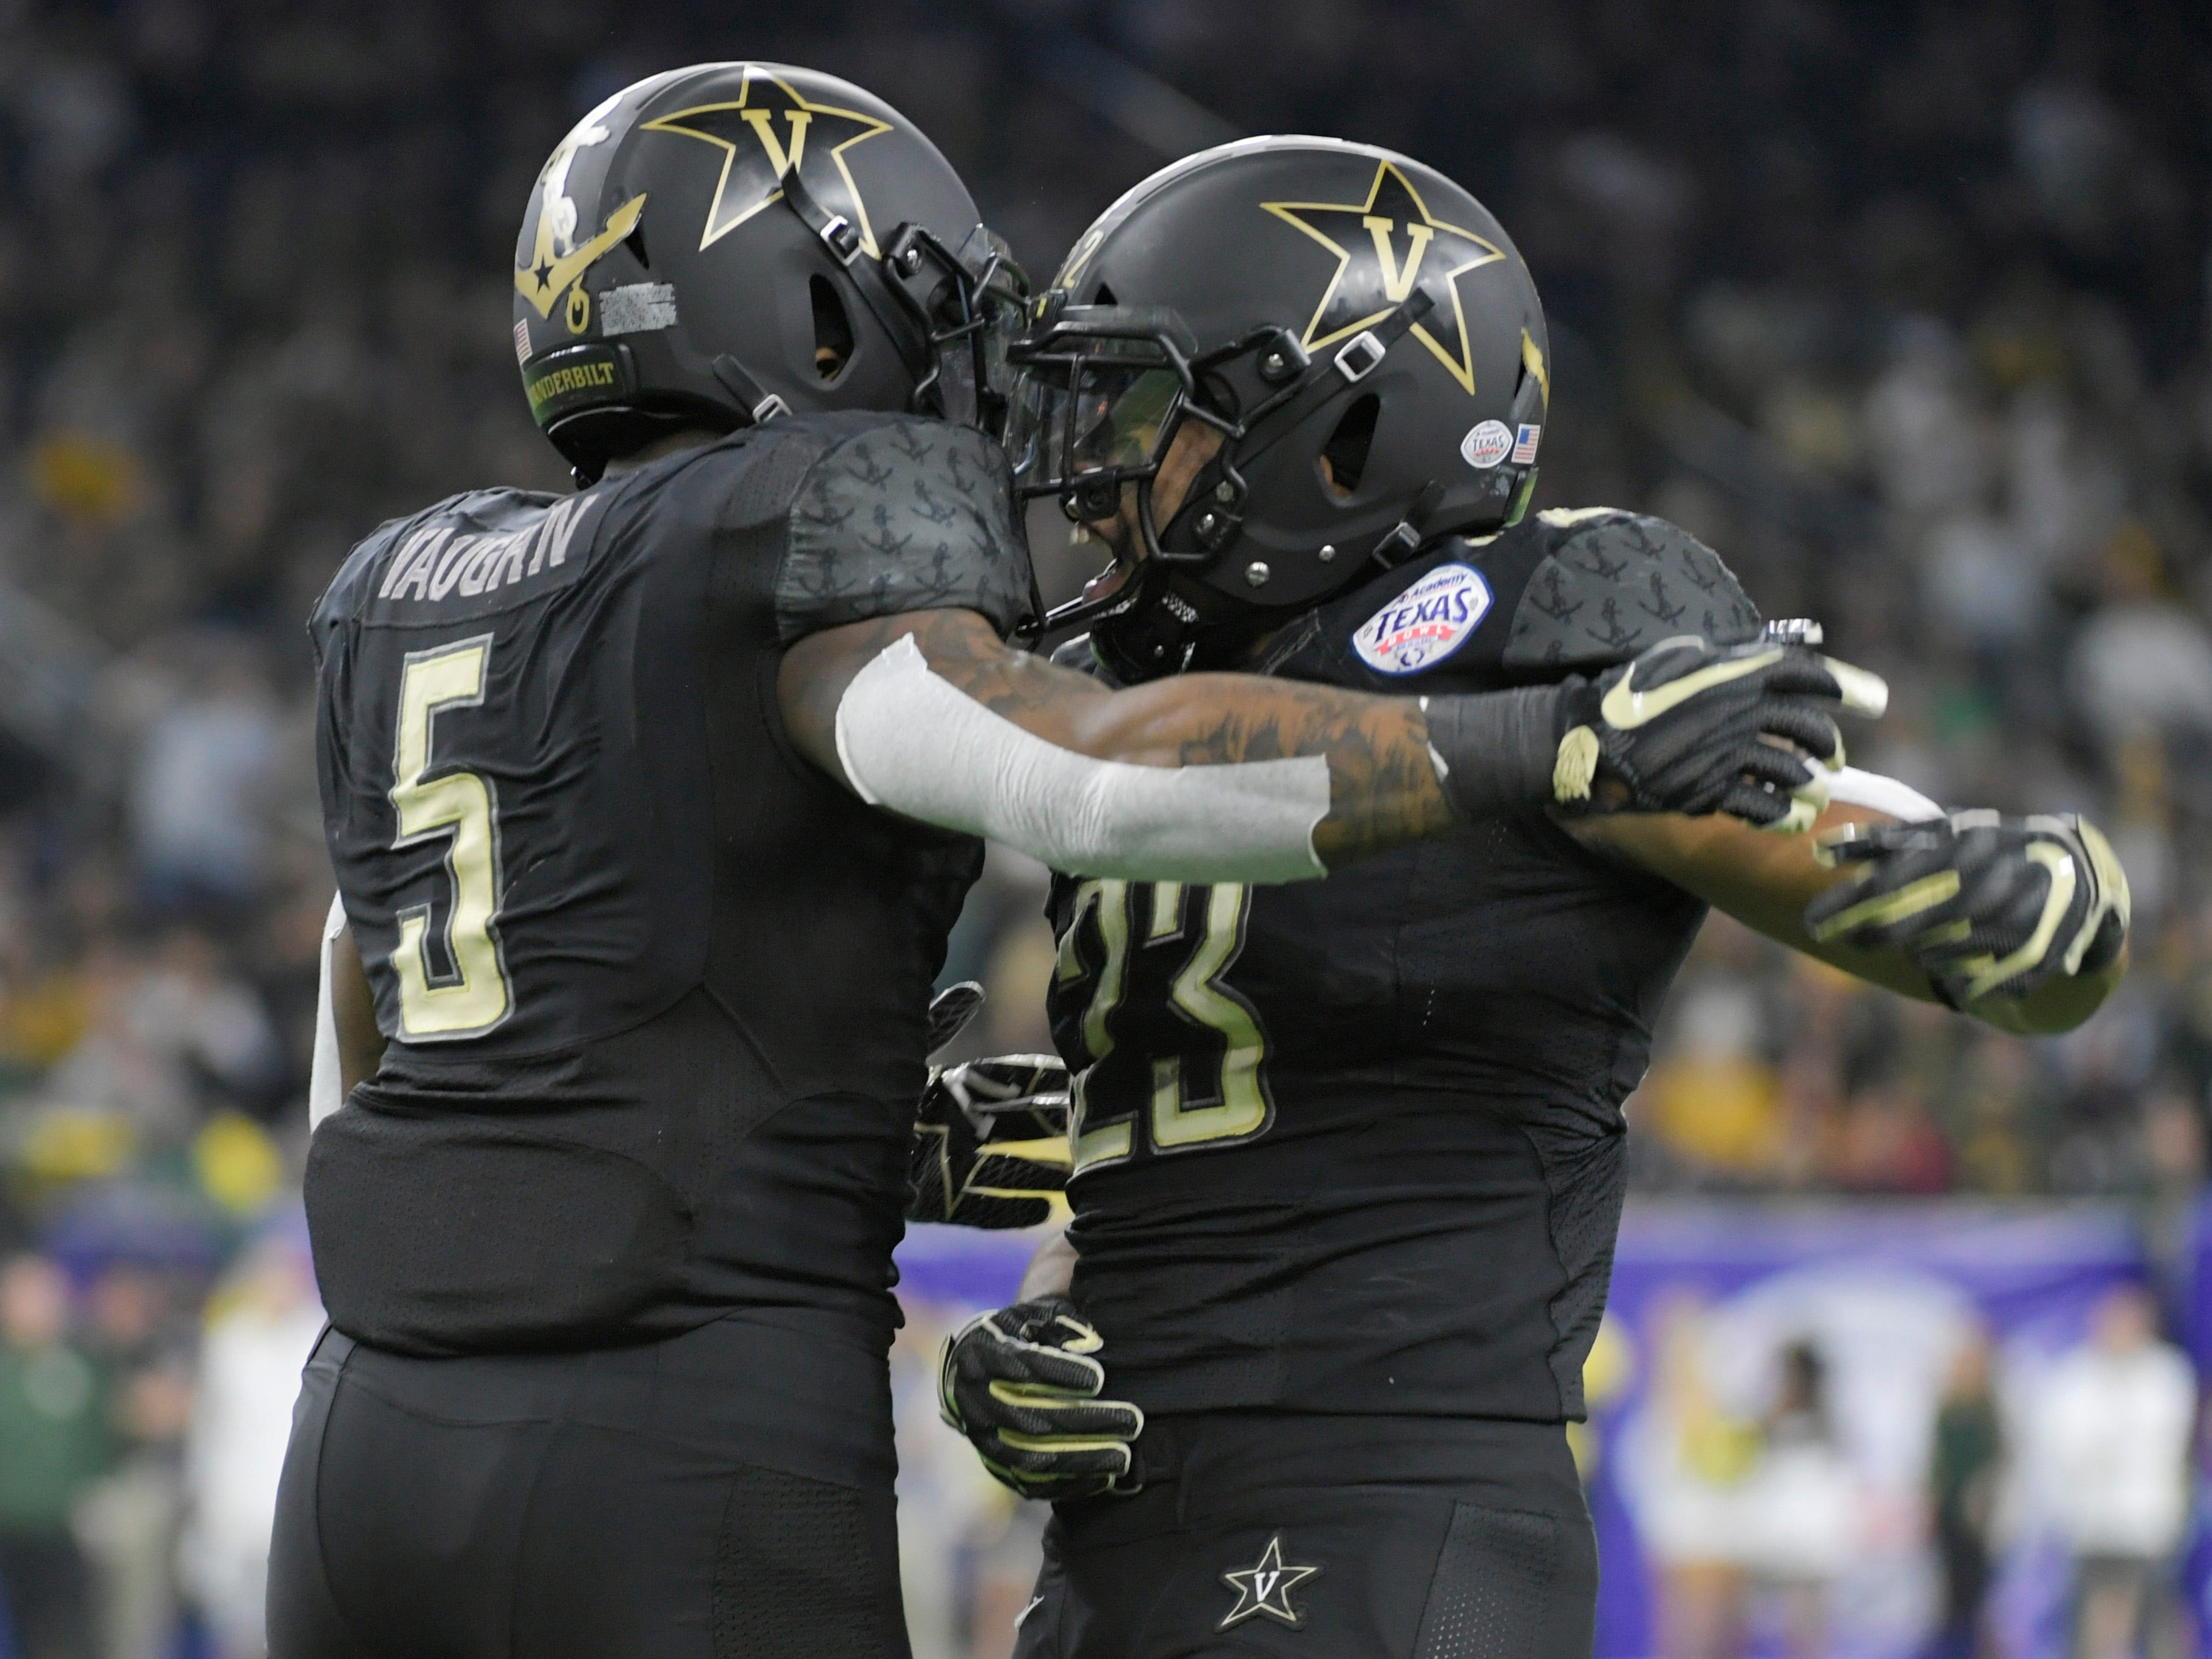 Vanderbilt Commodores running back Ke'Shawn Vaughn (5) celebrates his 68-yard touchdown with Vanderbilt Commodores running back Khari Blasingame (23) in the first quarter of the Academy Sports + Outdoors Texas Bowl at NRG Stadium in Houston on Thursday, Dec. 27, 2018.